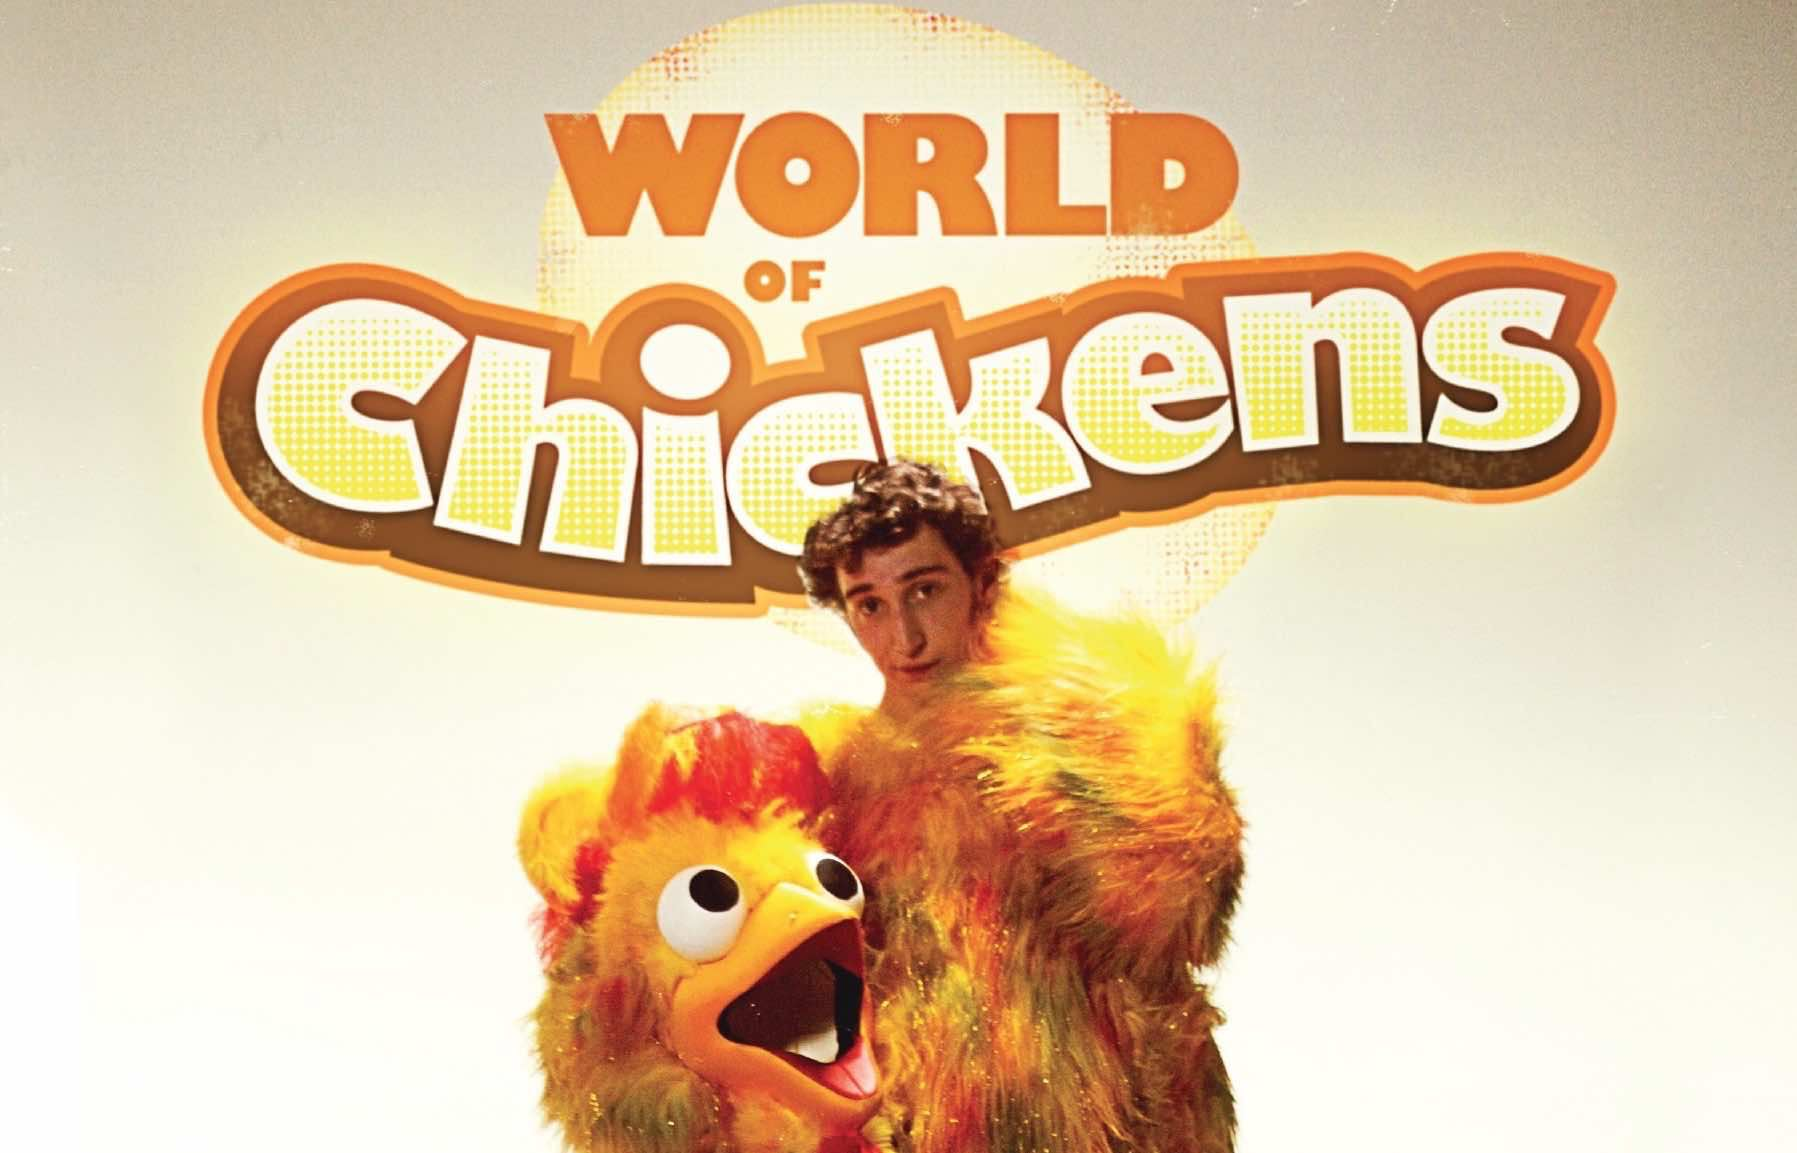 World of Chickens - feature film poster image